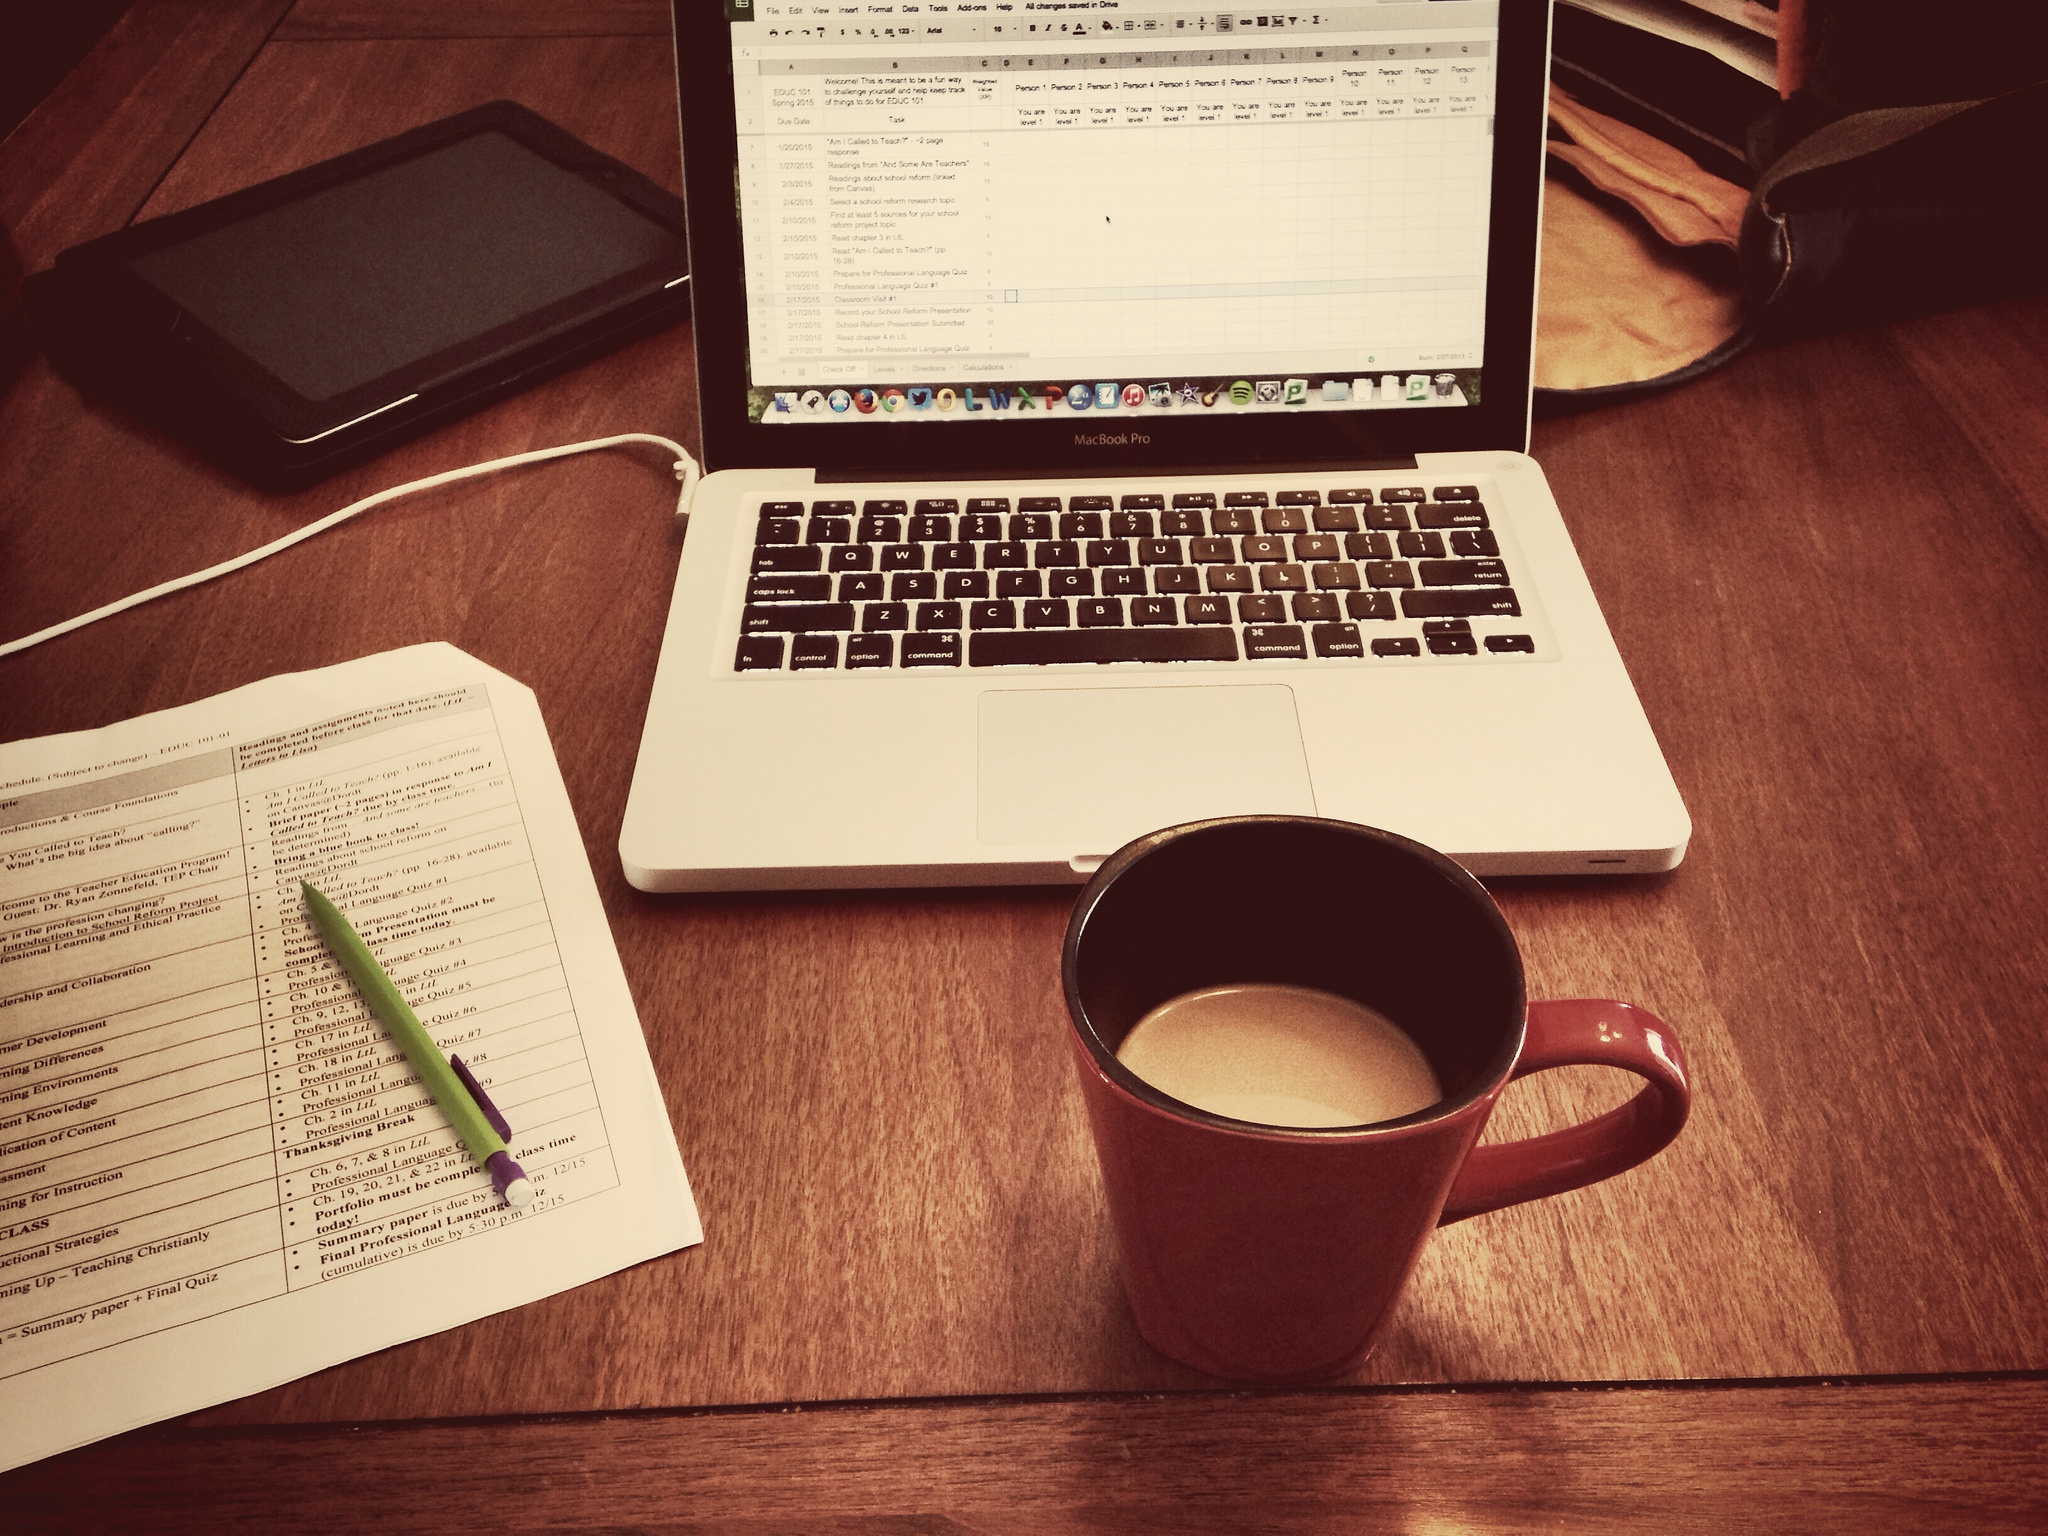 Freelancing is just one of the Ways to make money at home ... photo by CC user 113026679@N03 on Flickr